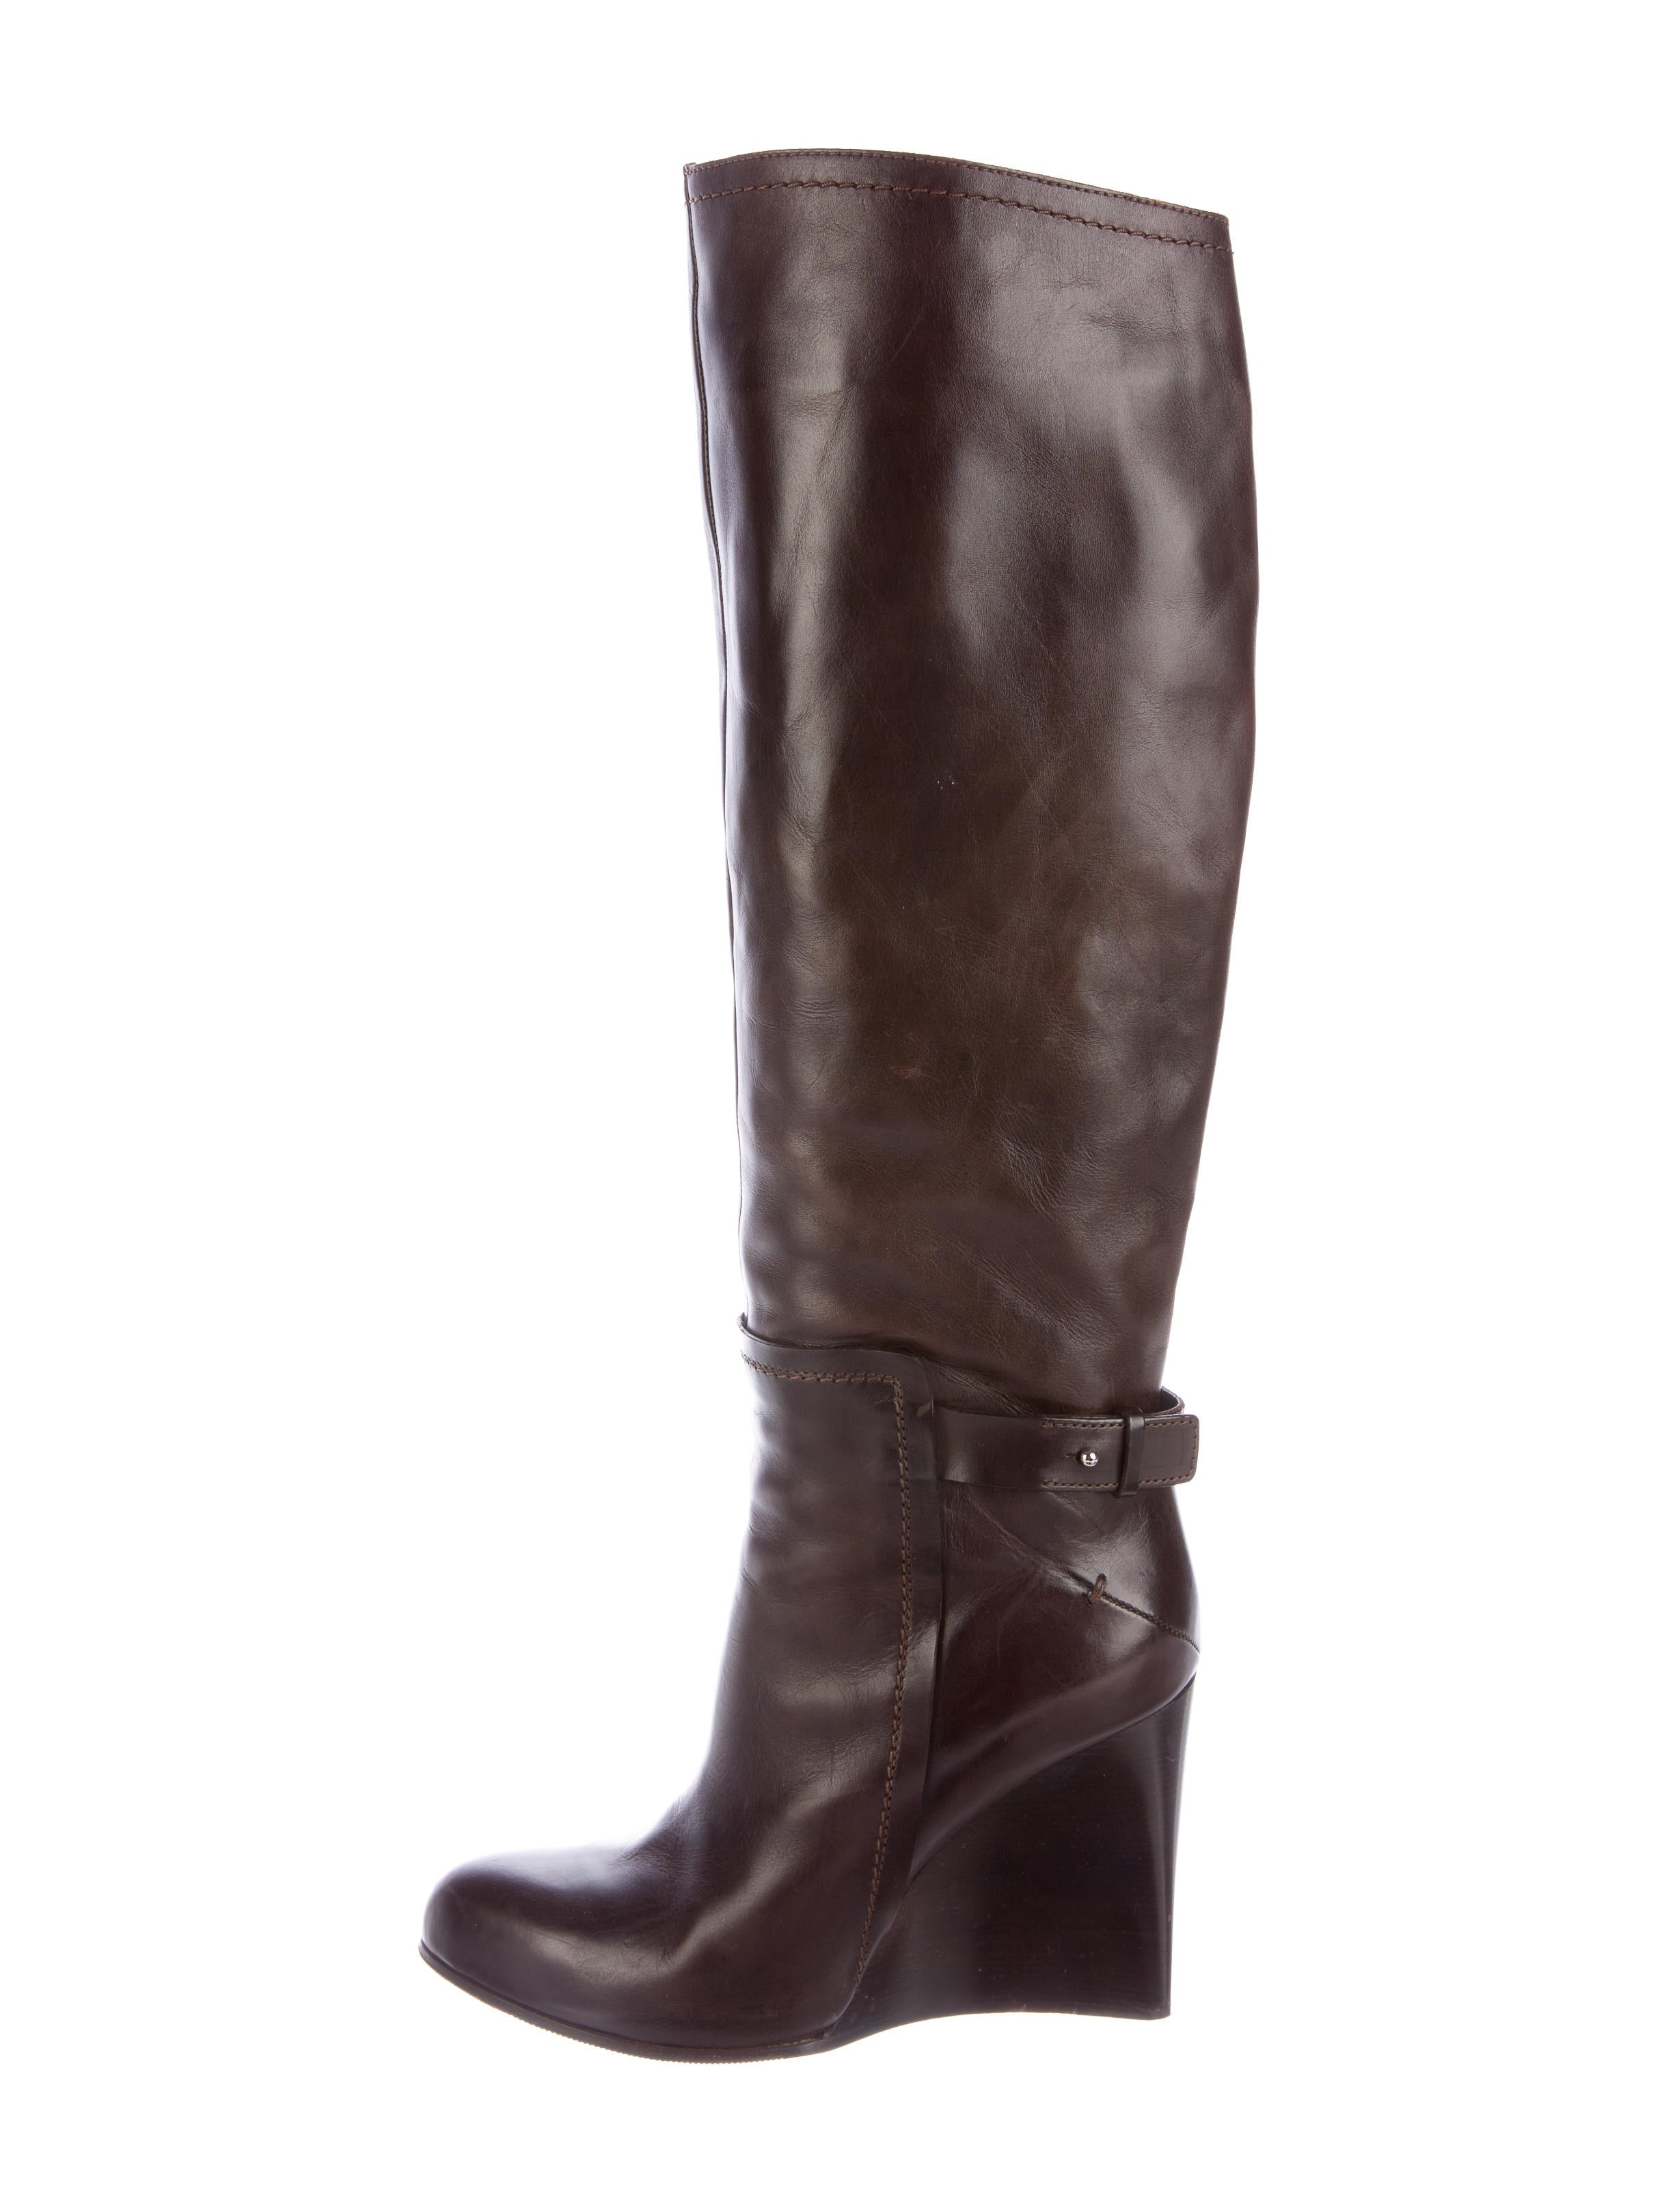 costume national knee high wedge boots shoes cot23678